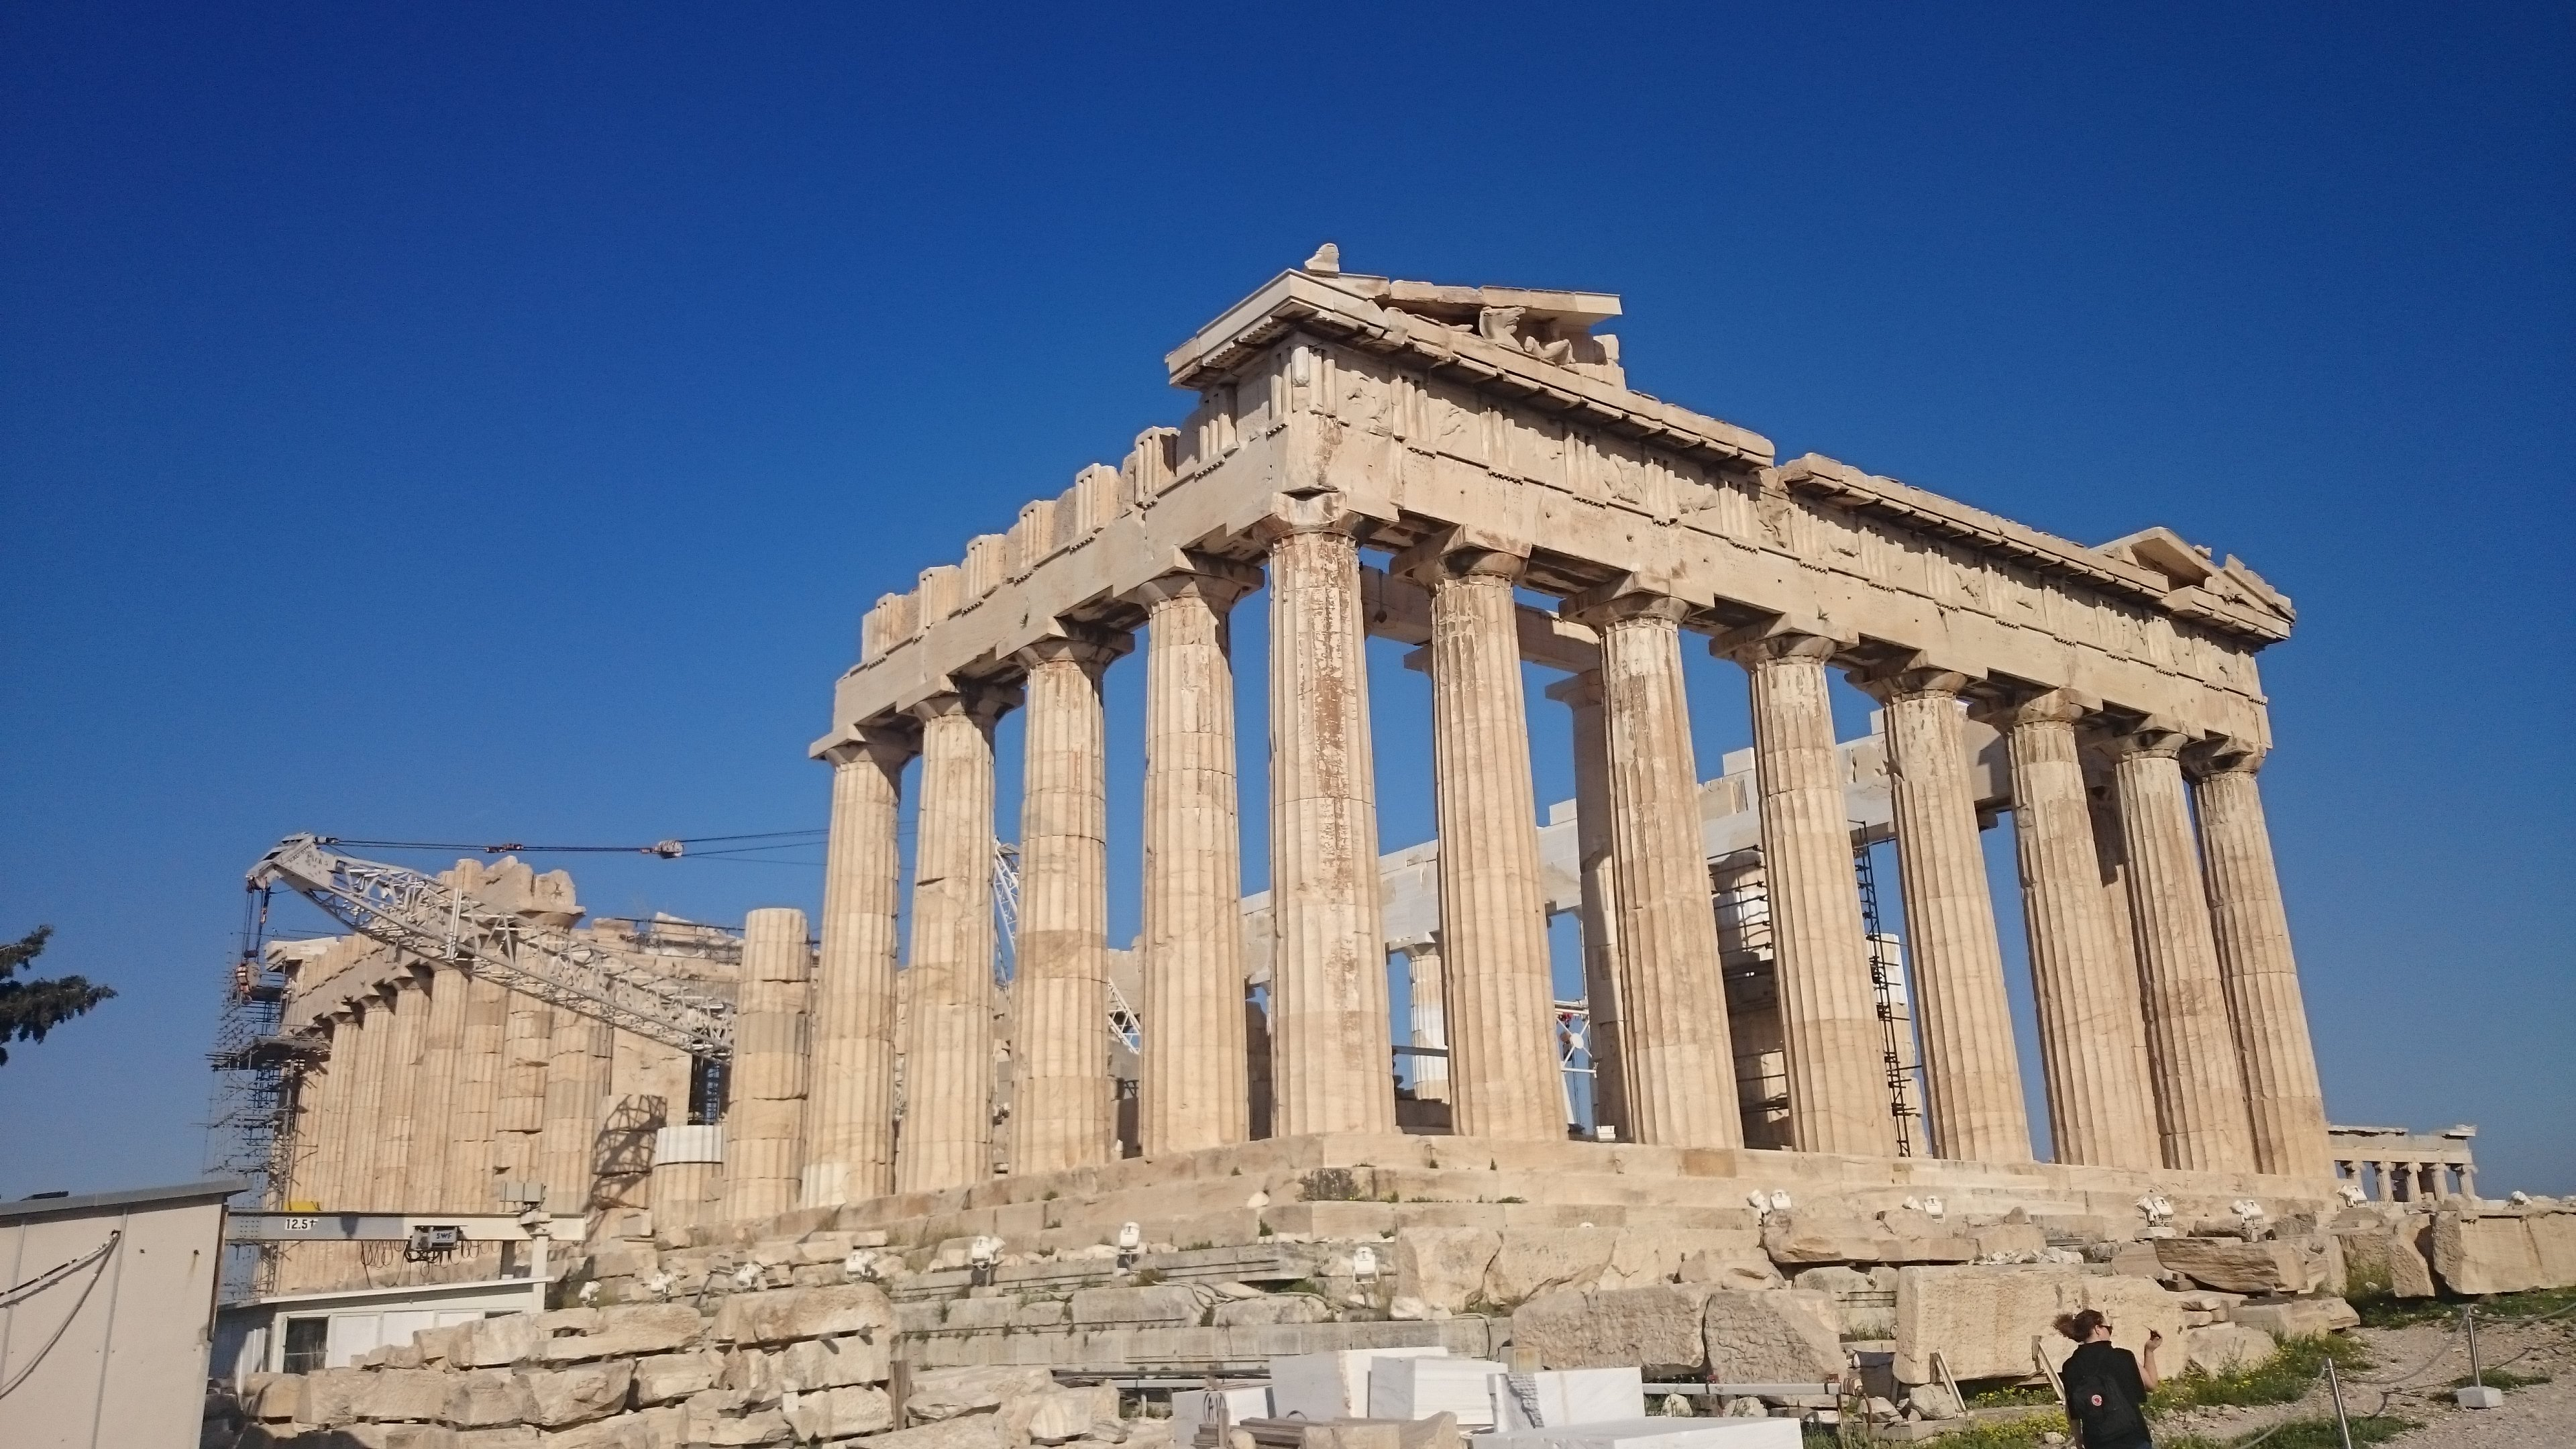 report on the parthenon Trasport from piraeus to parthenon - piraeus forum europe report inappropriate content trasport from piraeus to parthenon apr 29.